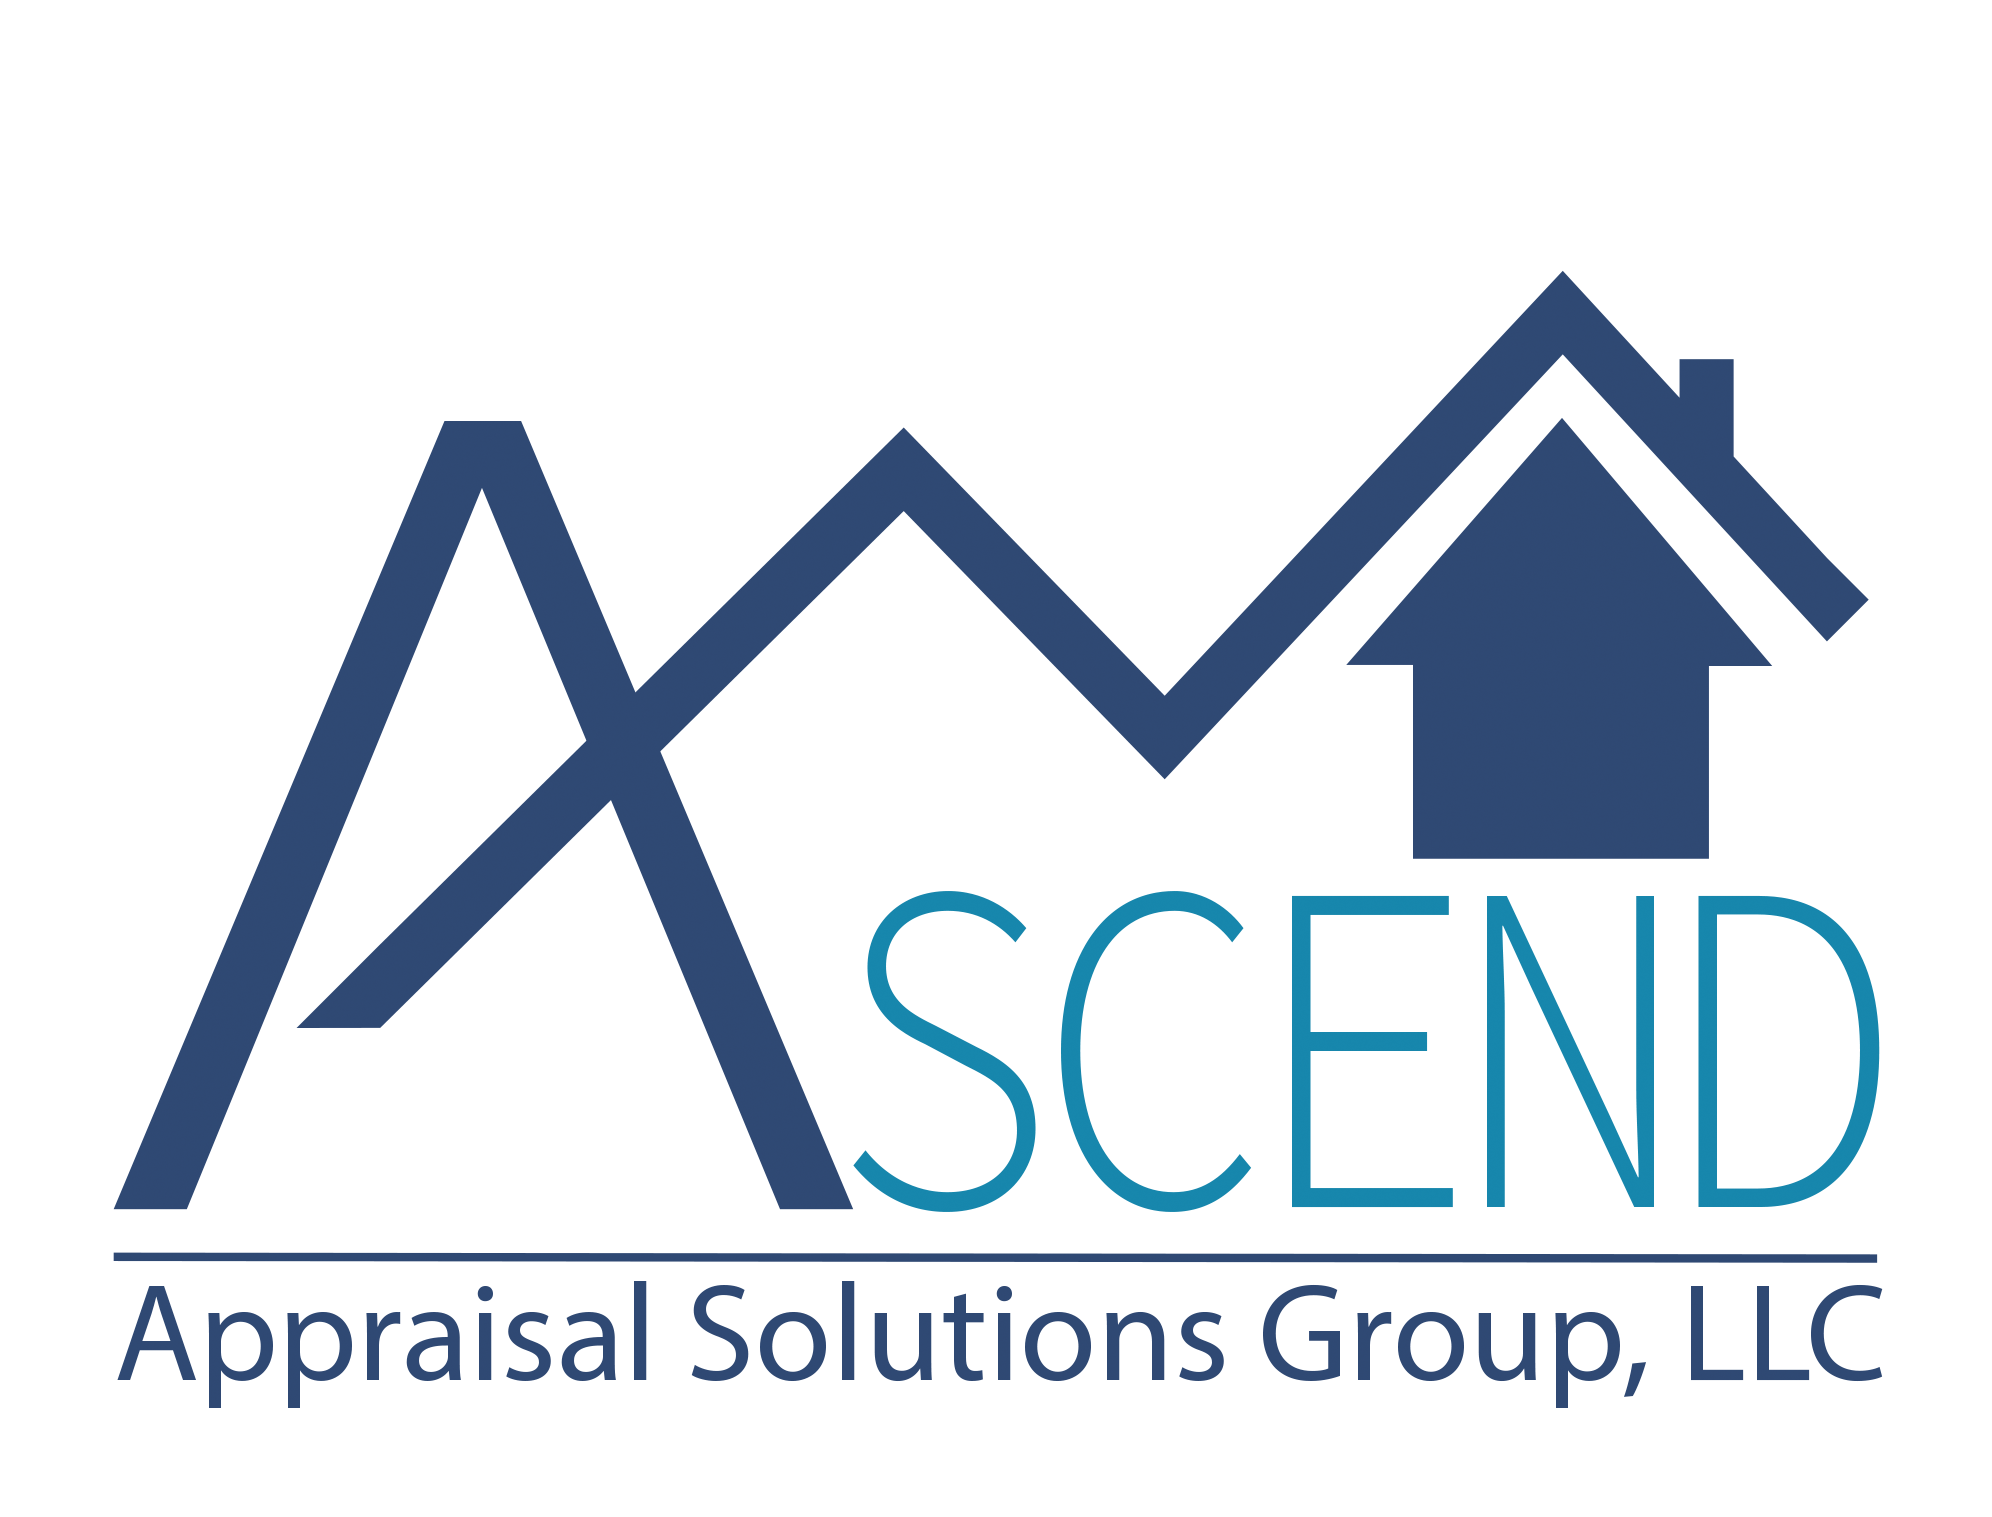 Birdie Sponsors - Ascend Appraisal Solutions Group, LLC - Logo